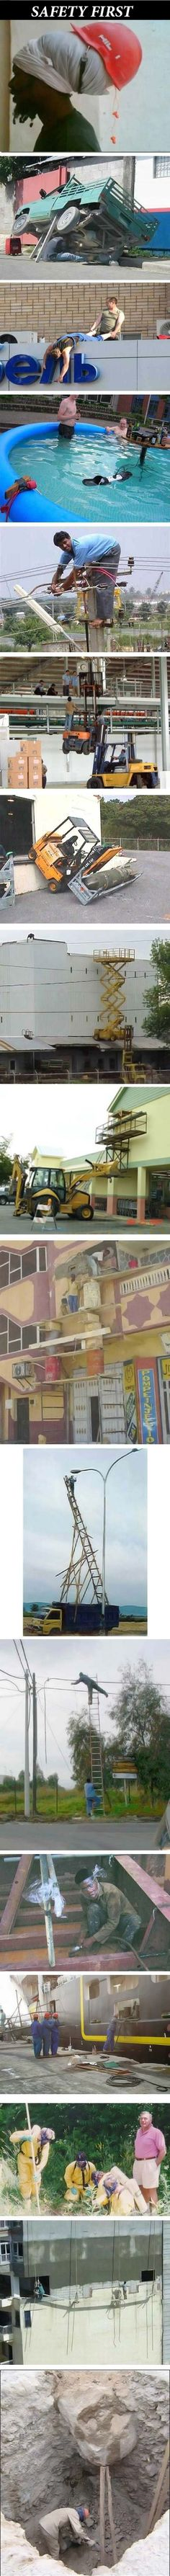 Safety First Complilation, Click the link to view todays funniest pictures!